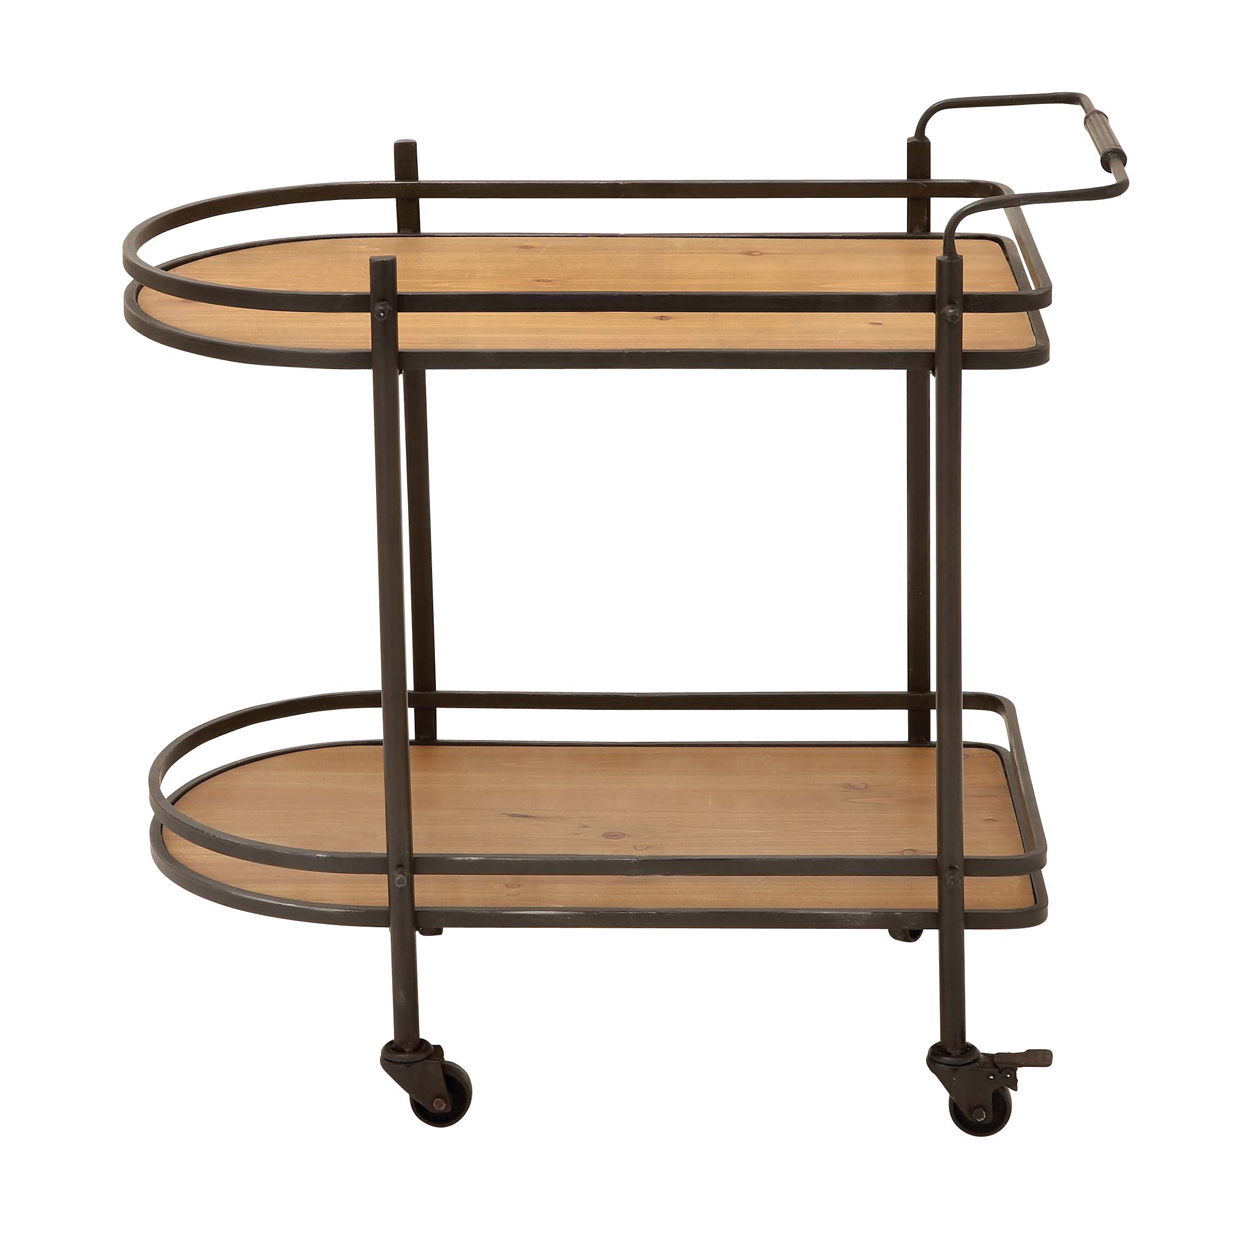 Contemporary Rolling Mobile Tea Serving And Kitchen Bar Cart Ebay